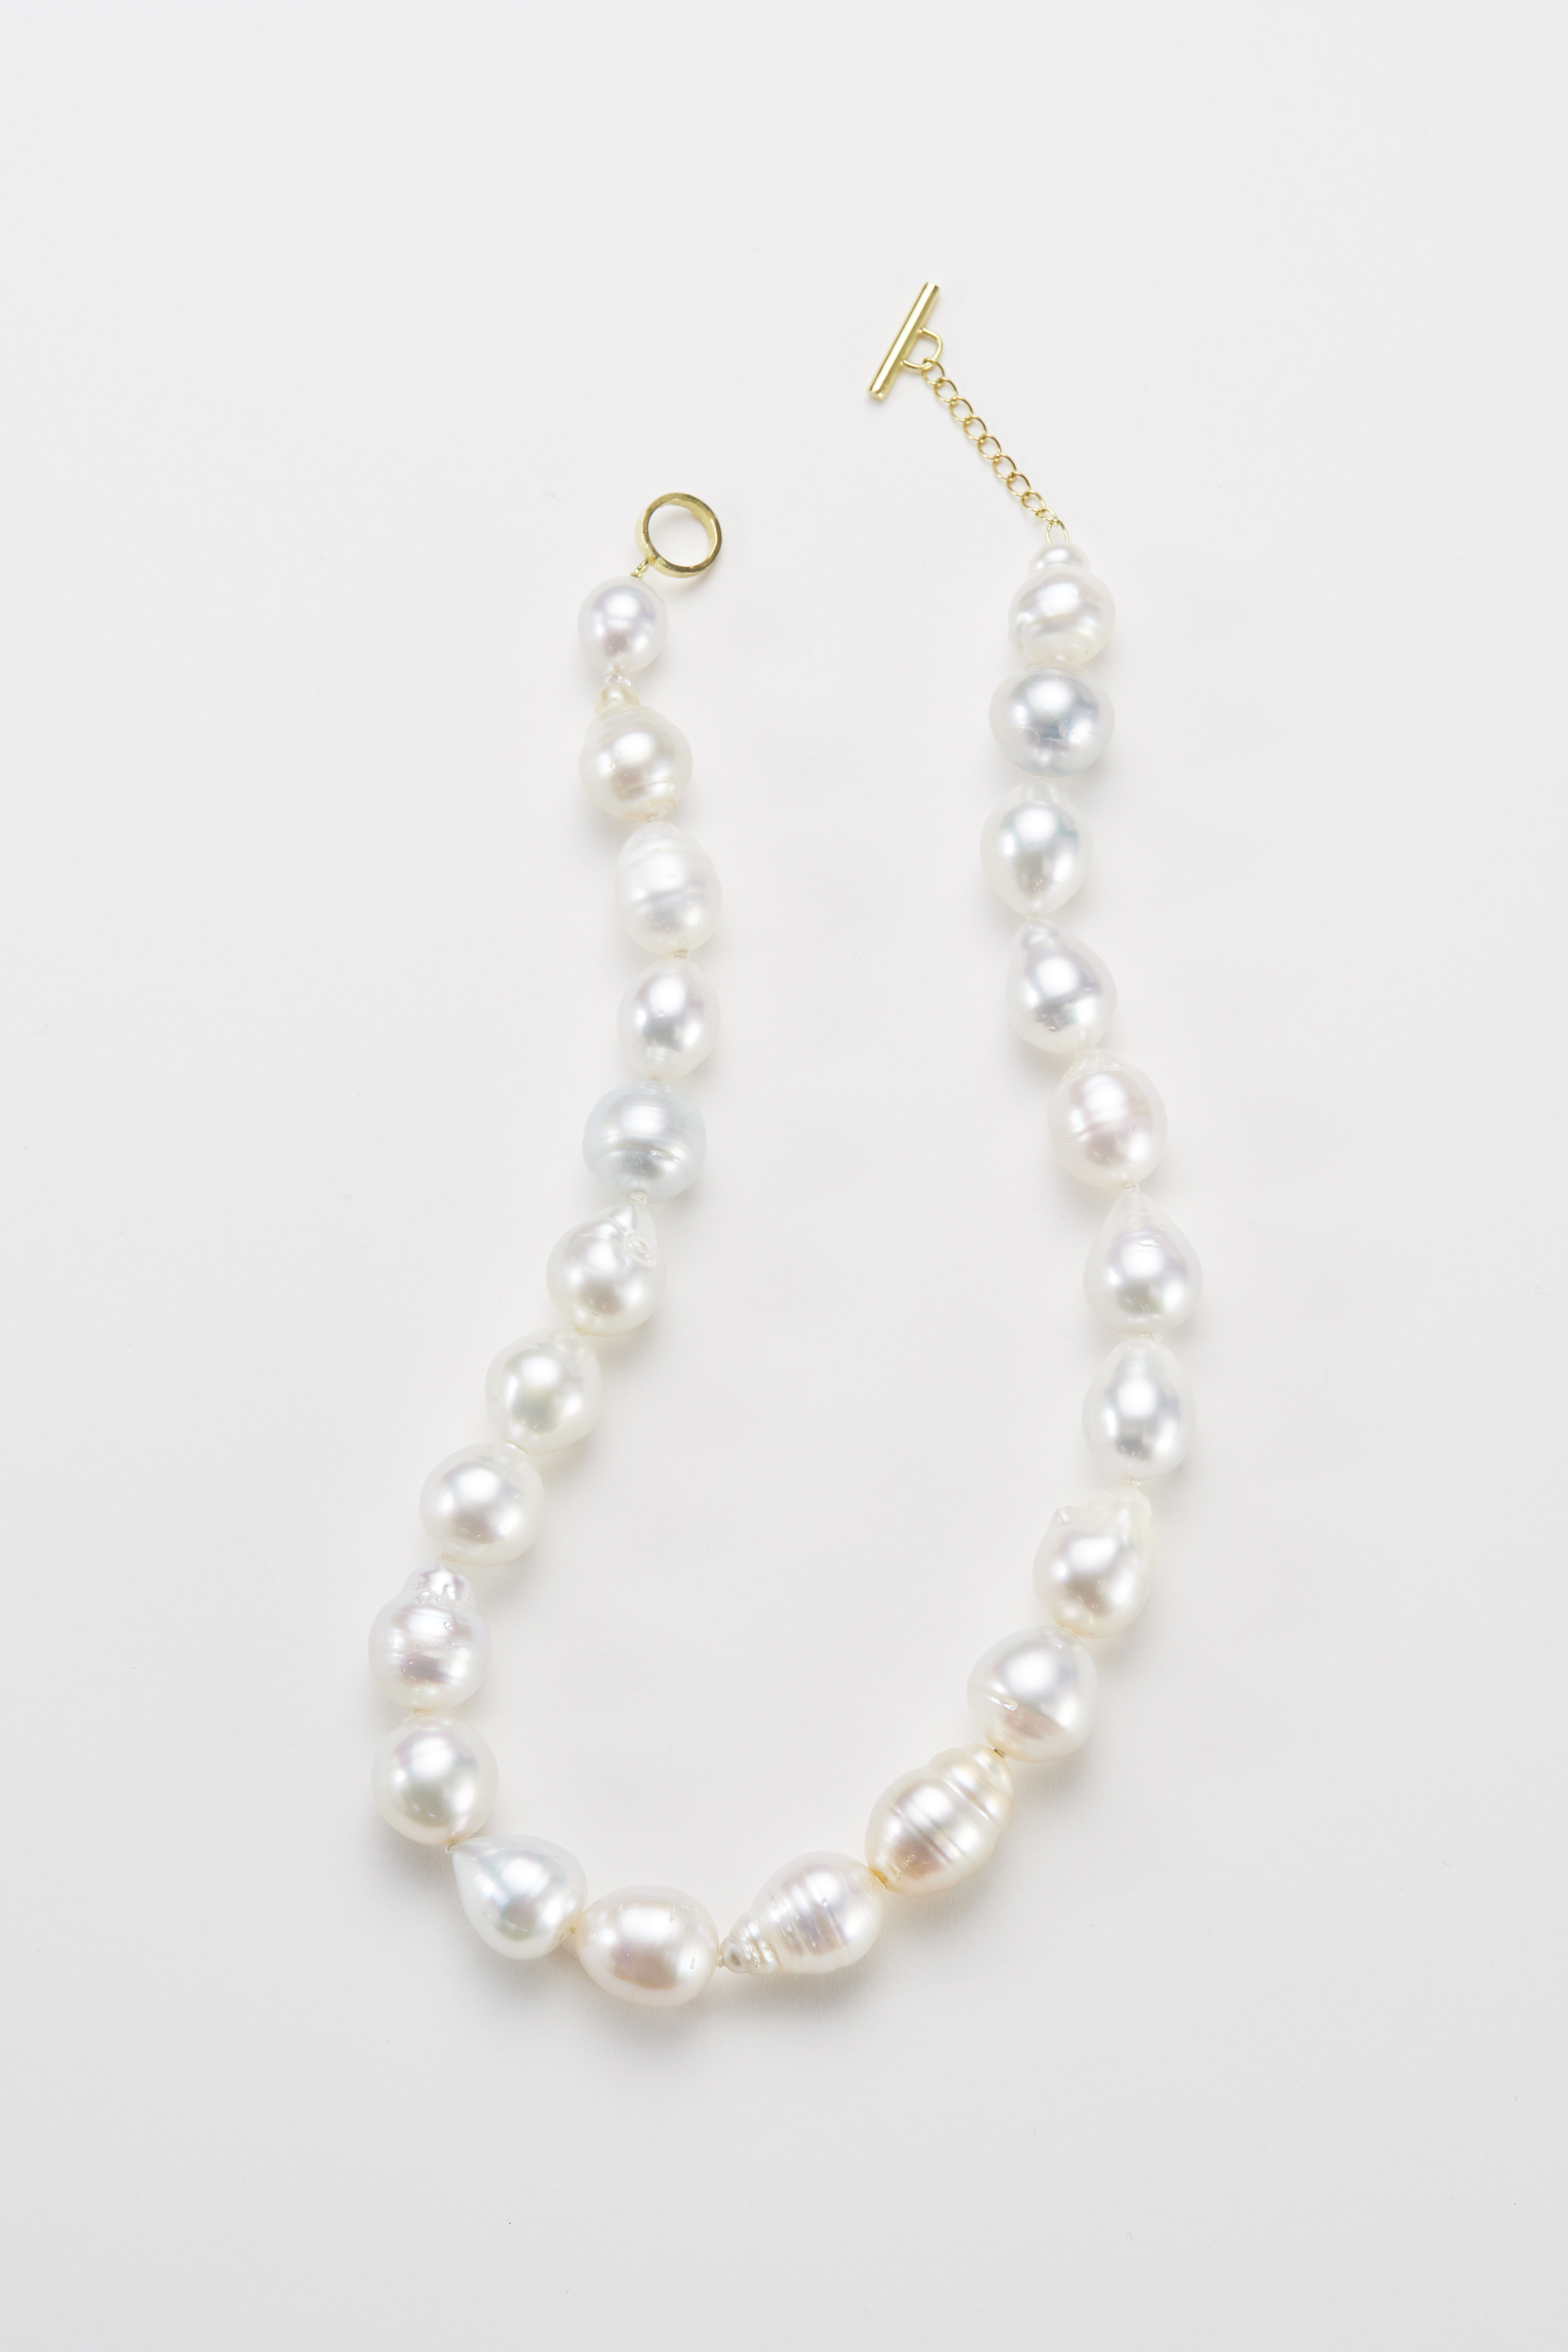 South sea pearl necklace/white. 18ct gold -N300047